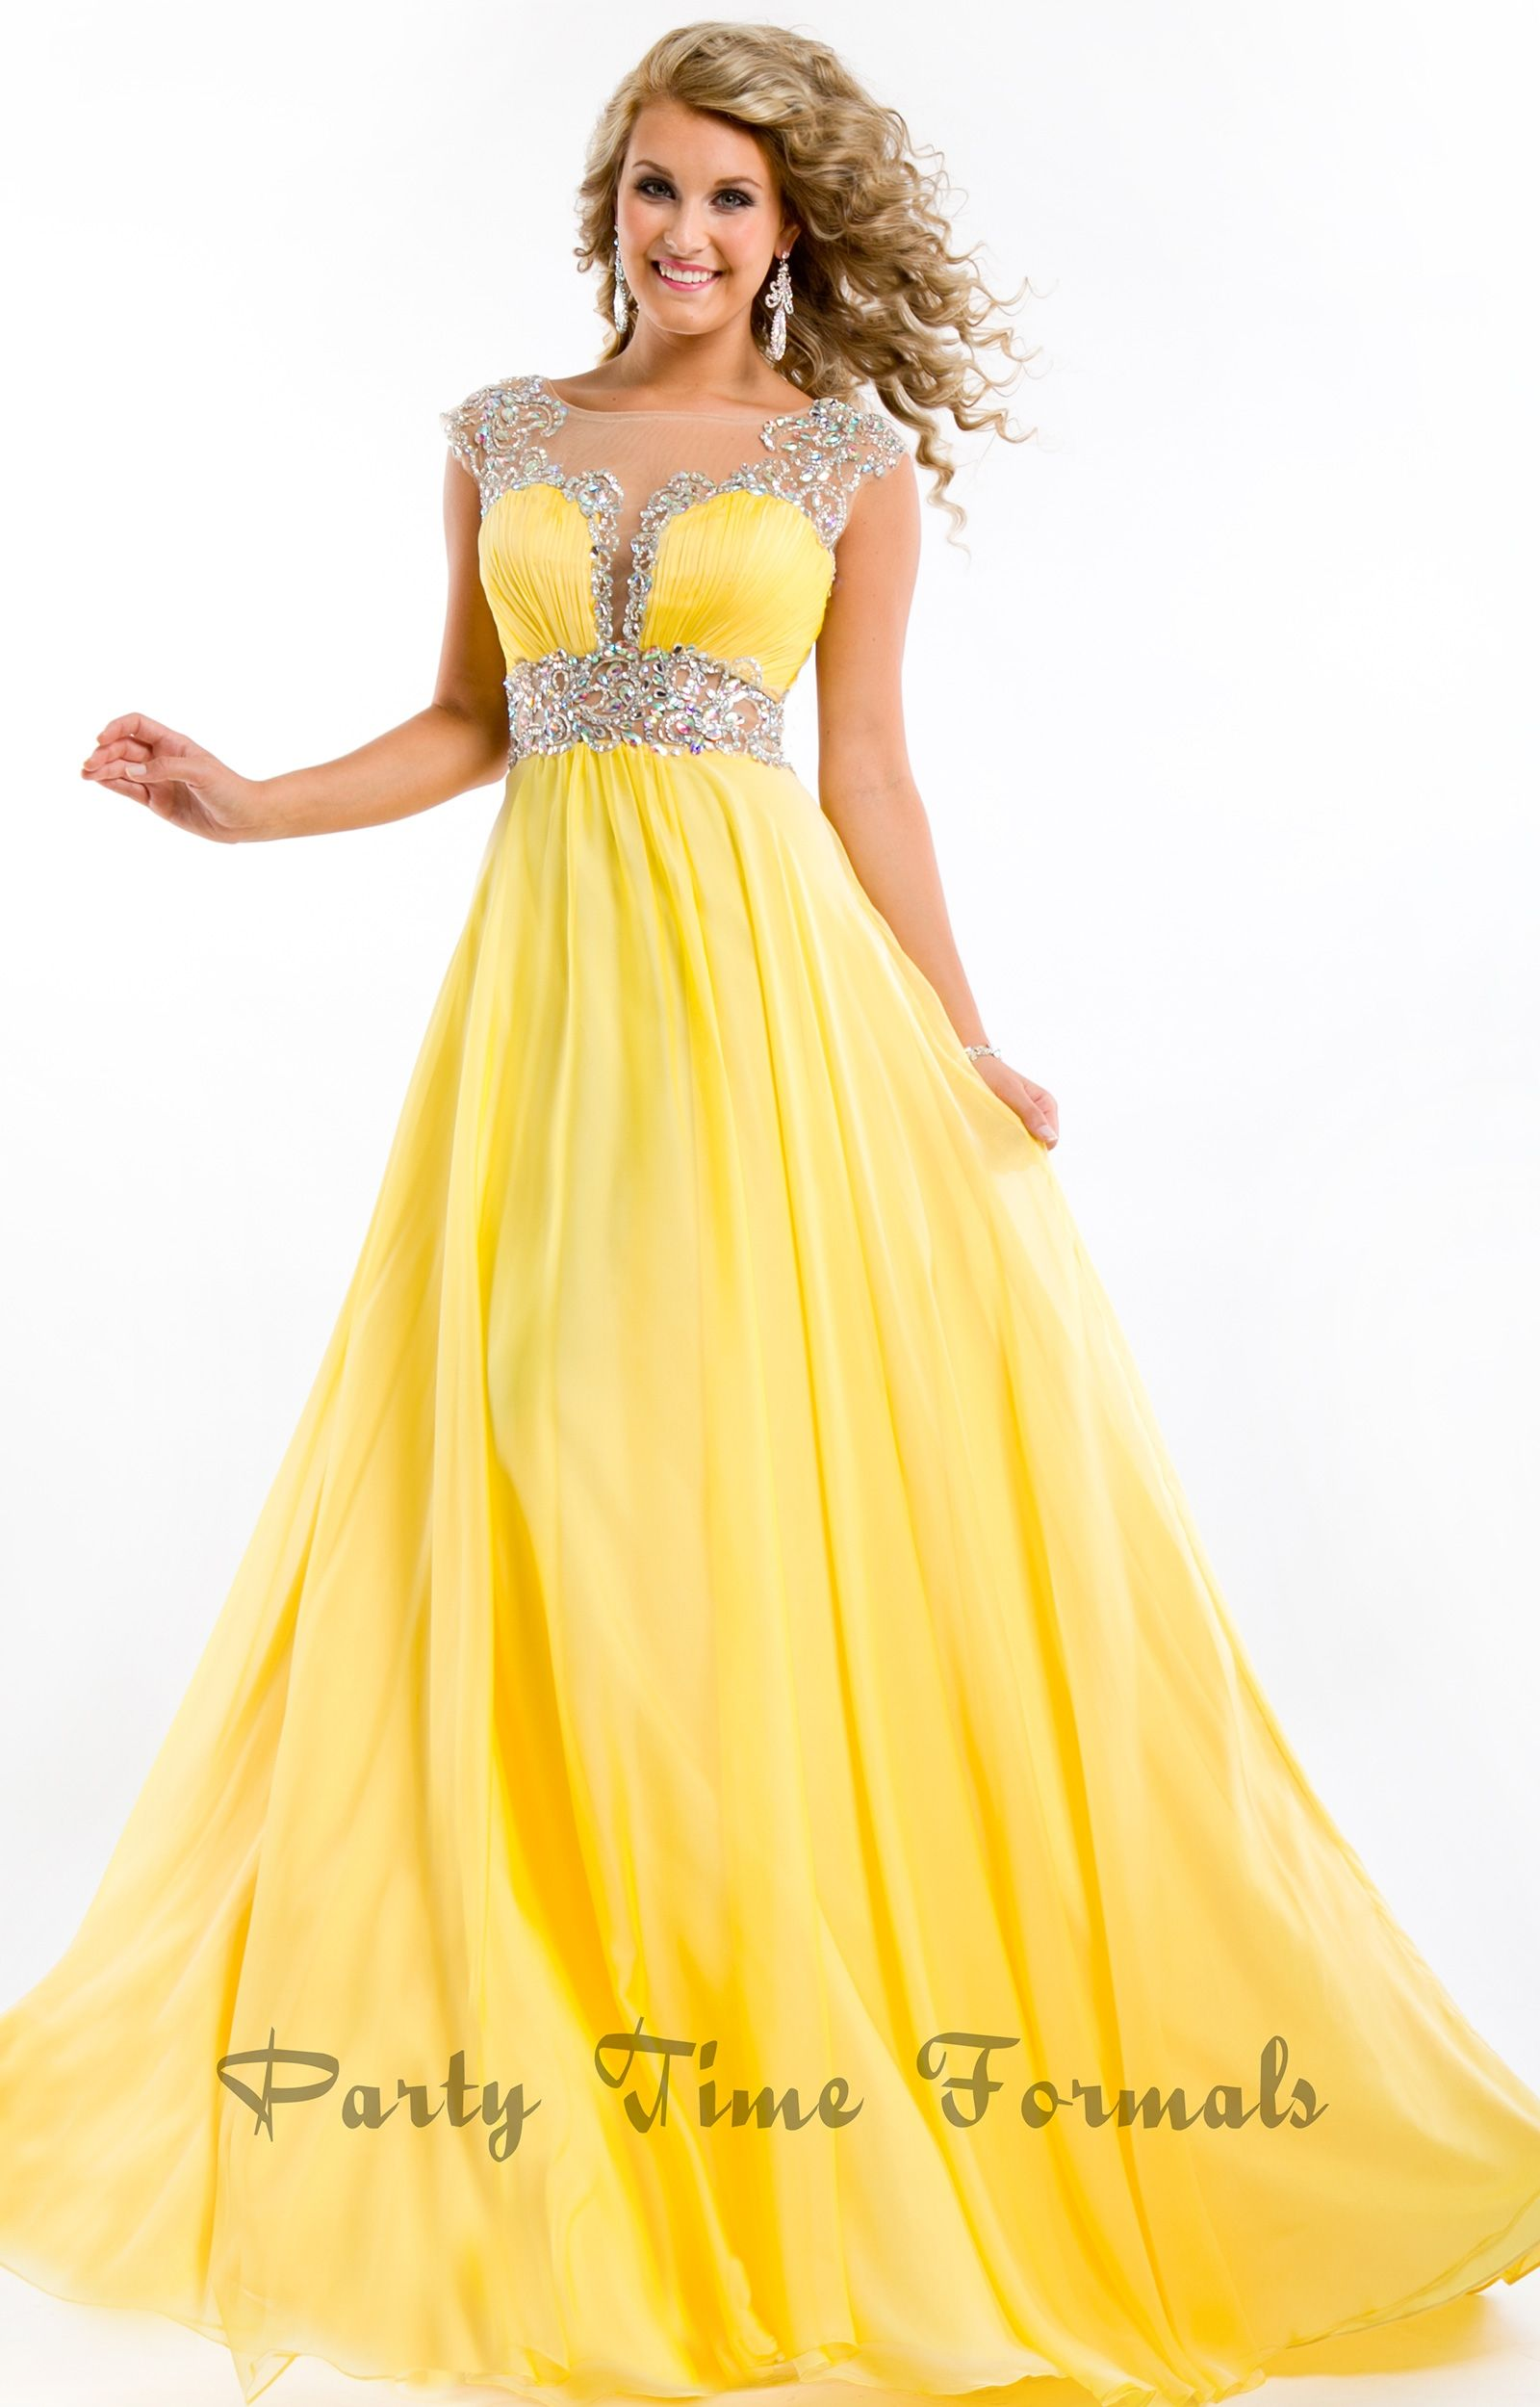 Images of Yellow Party Dresses - The Fashions Of Paradise